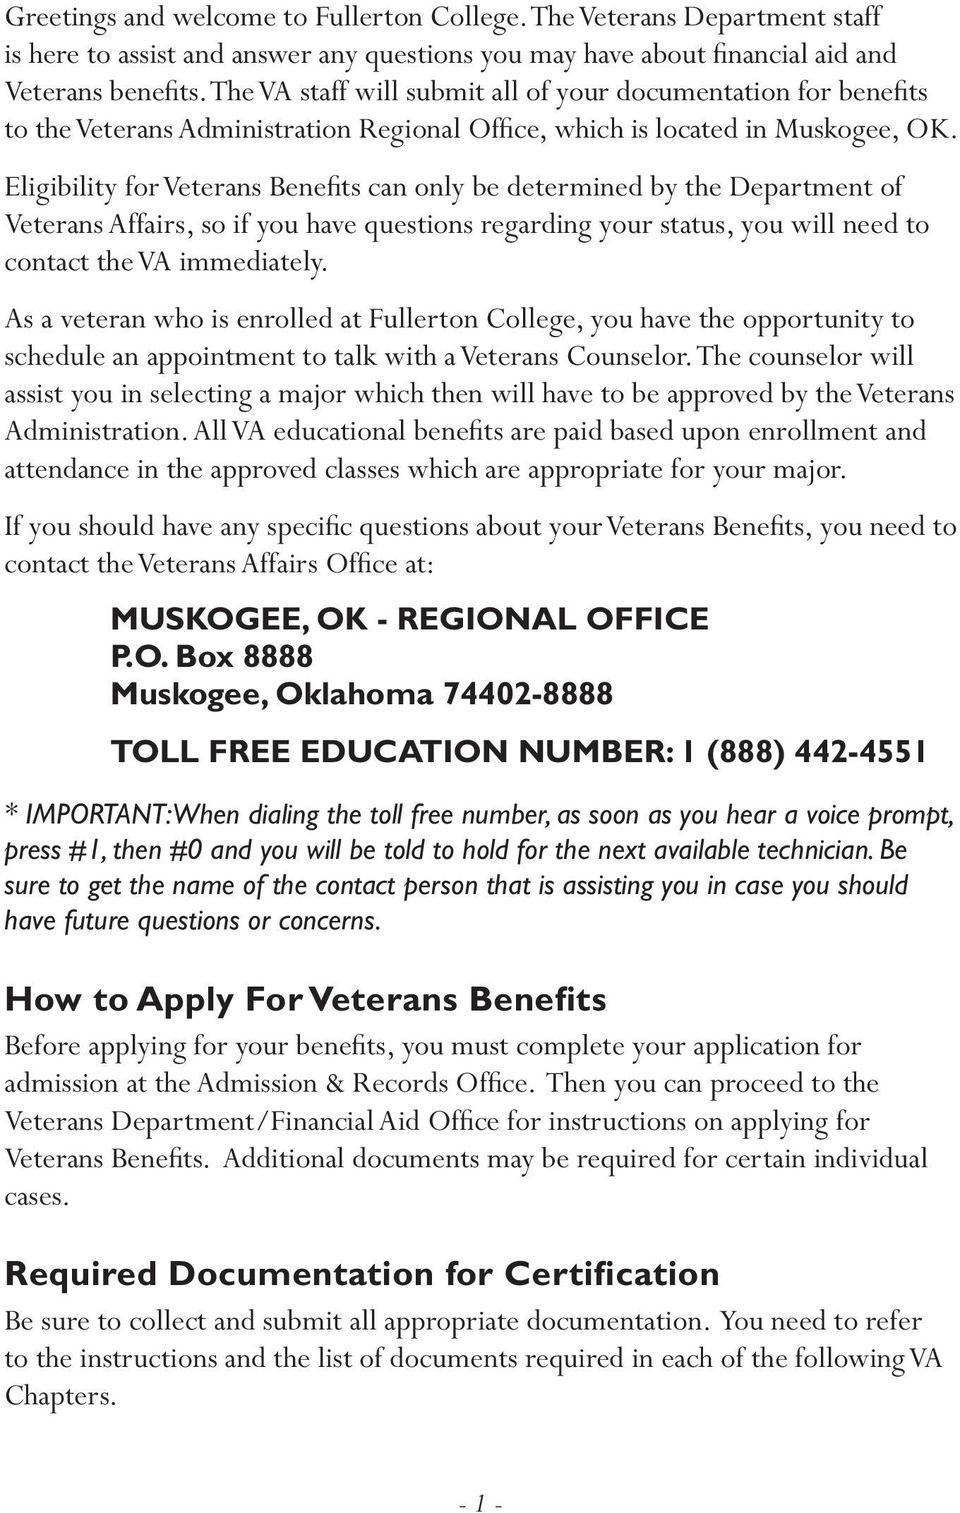 Eligibility for Veterans Benefits can only be determined by the Department of Veterans Affairs, so if you have questions regarding your status, you will need to contact the VA immediately.